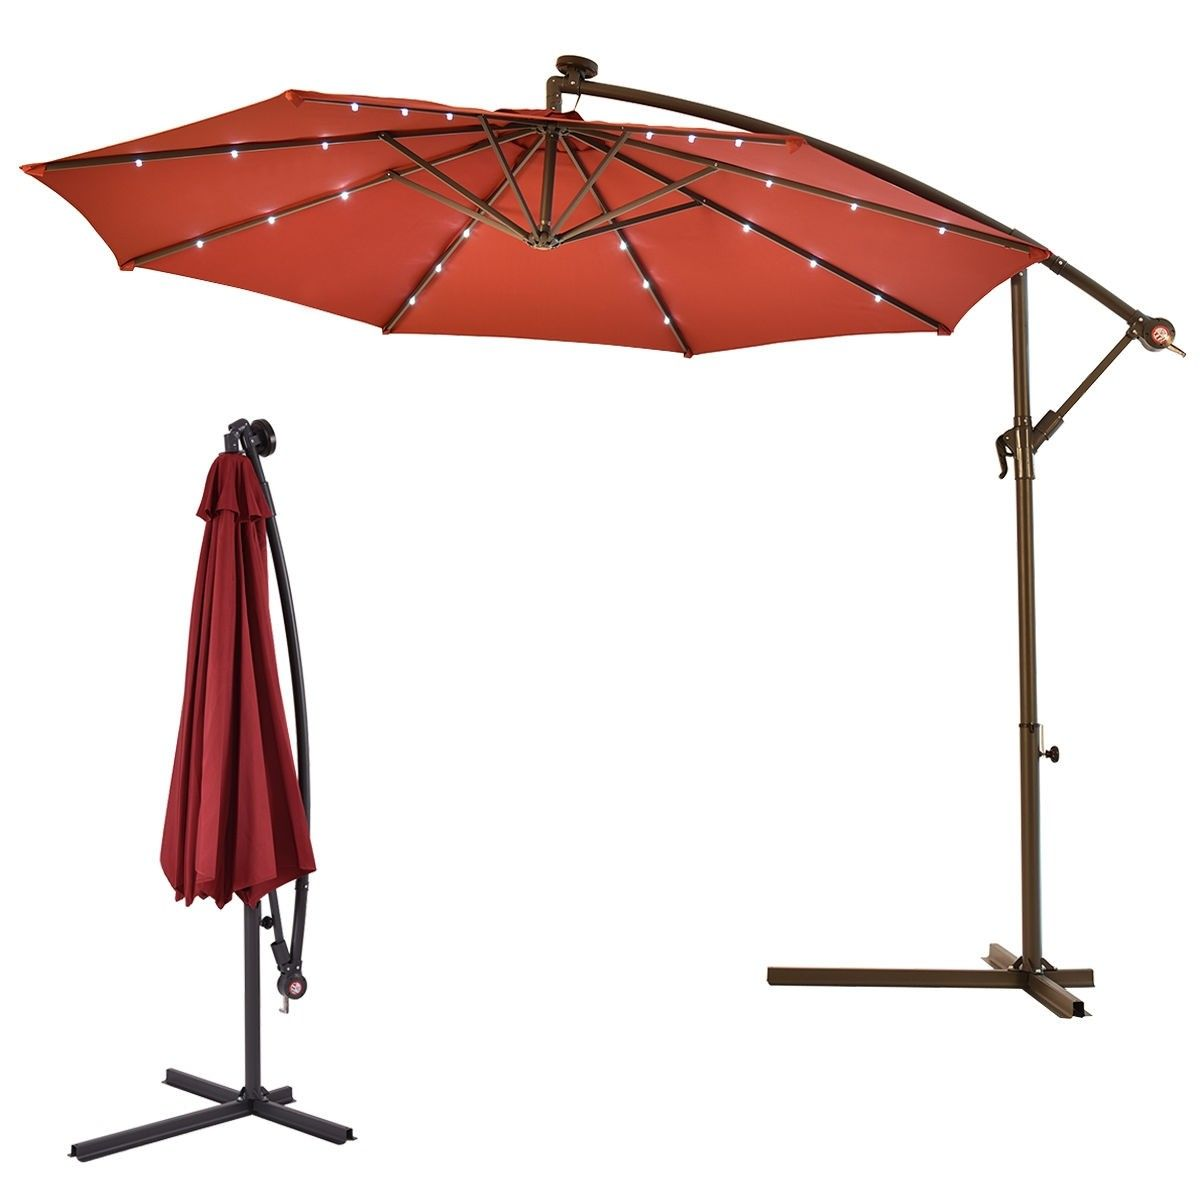 10 Patio Hanging Umbrella Sun Shade With Solar Led Lights Patio Umbrella Patio Sun Shades Solar Umbrella